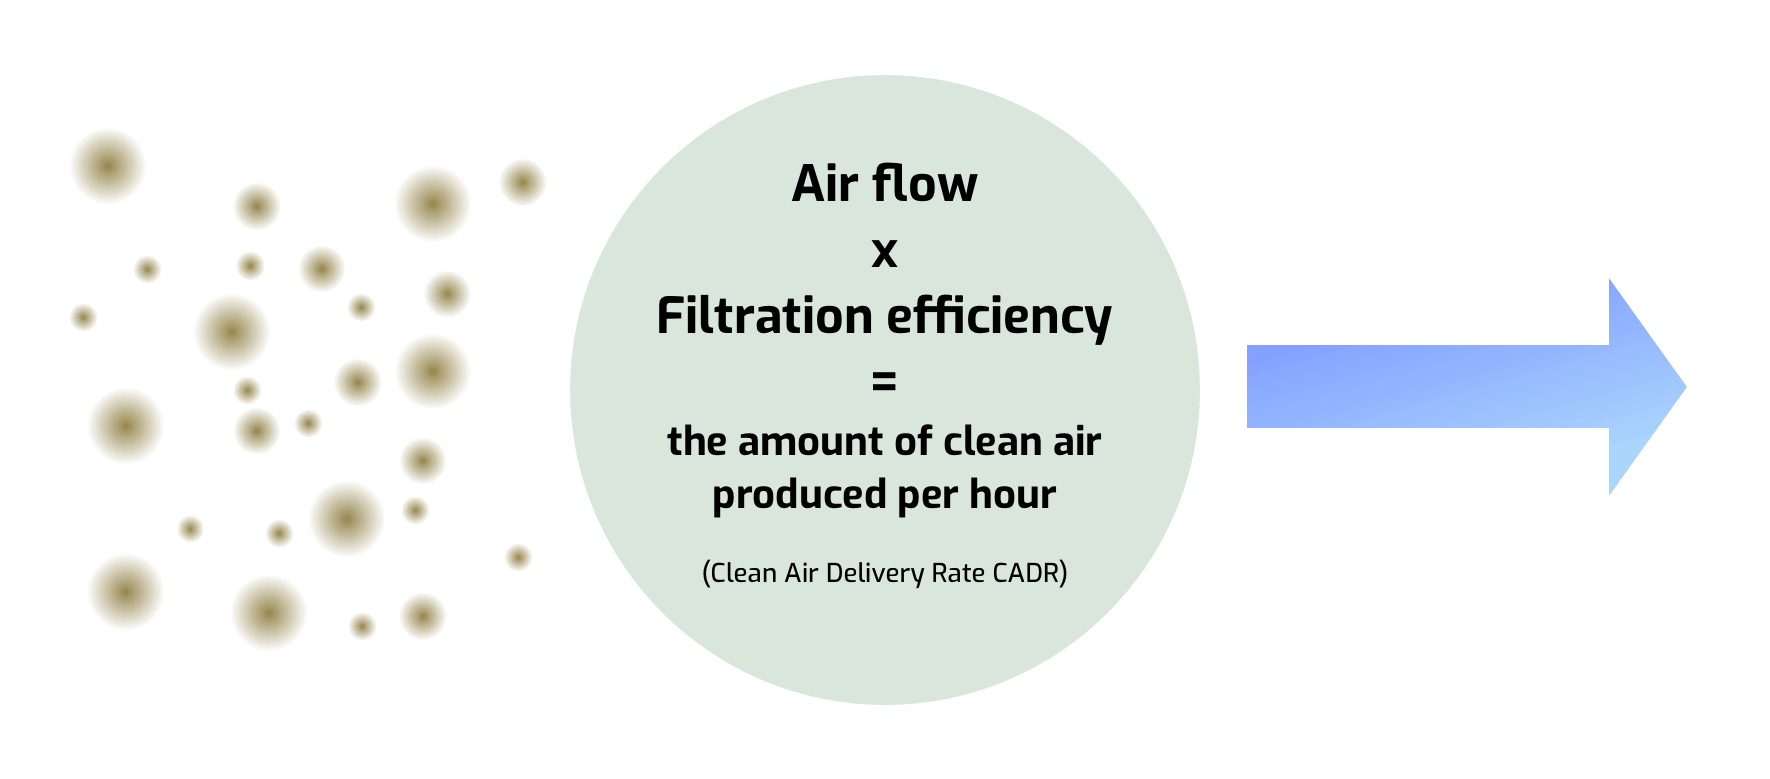 Air flow x filtration efficiency = the amount of clean air per hour